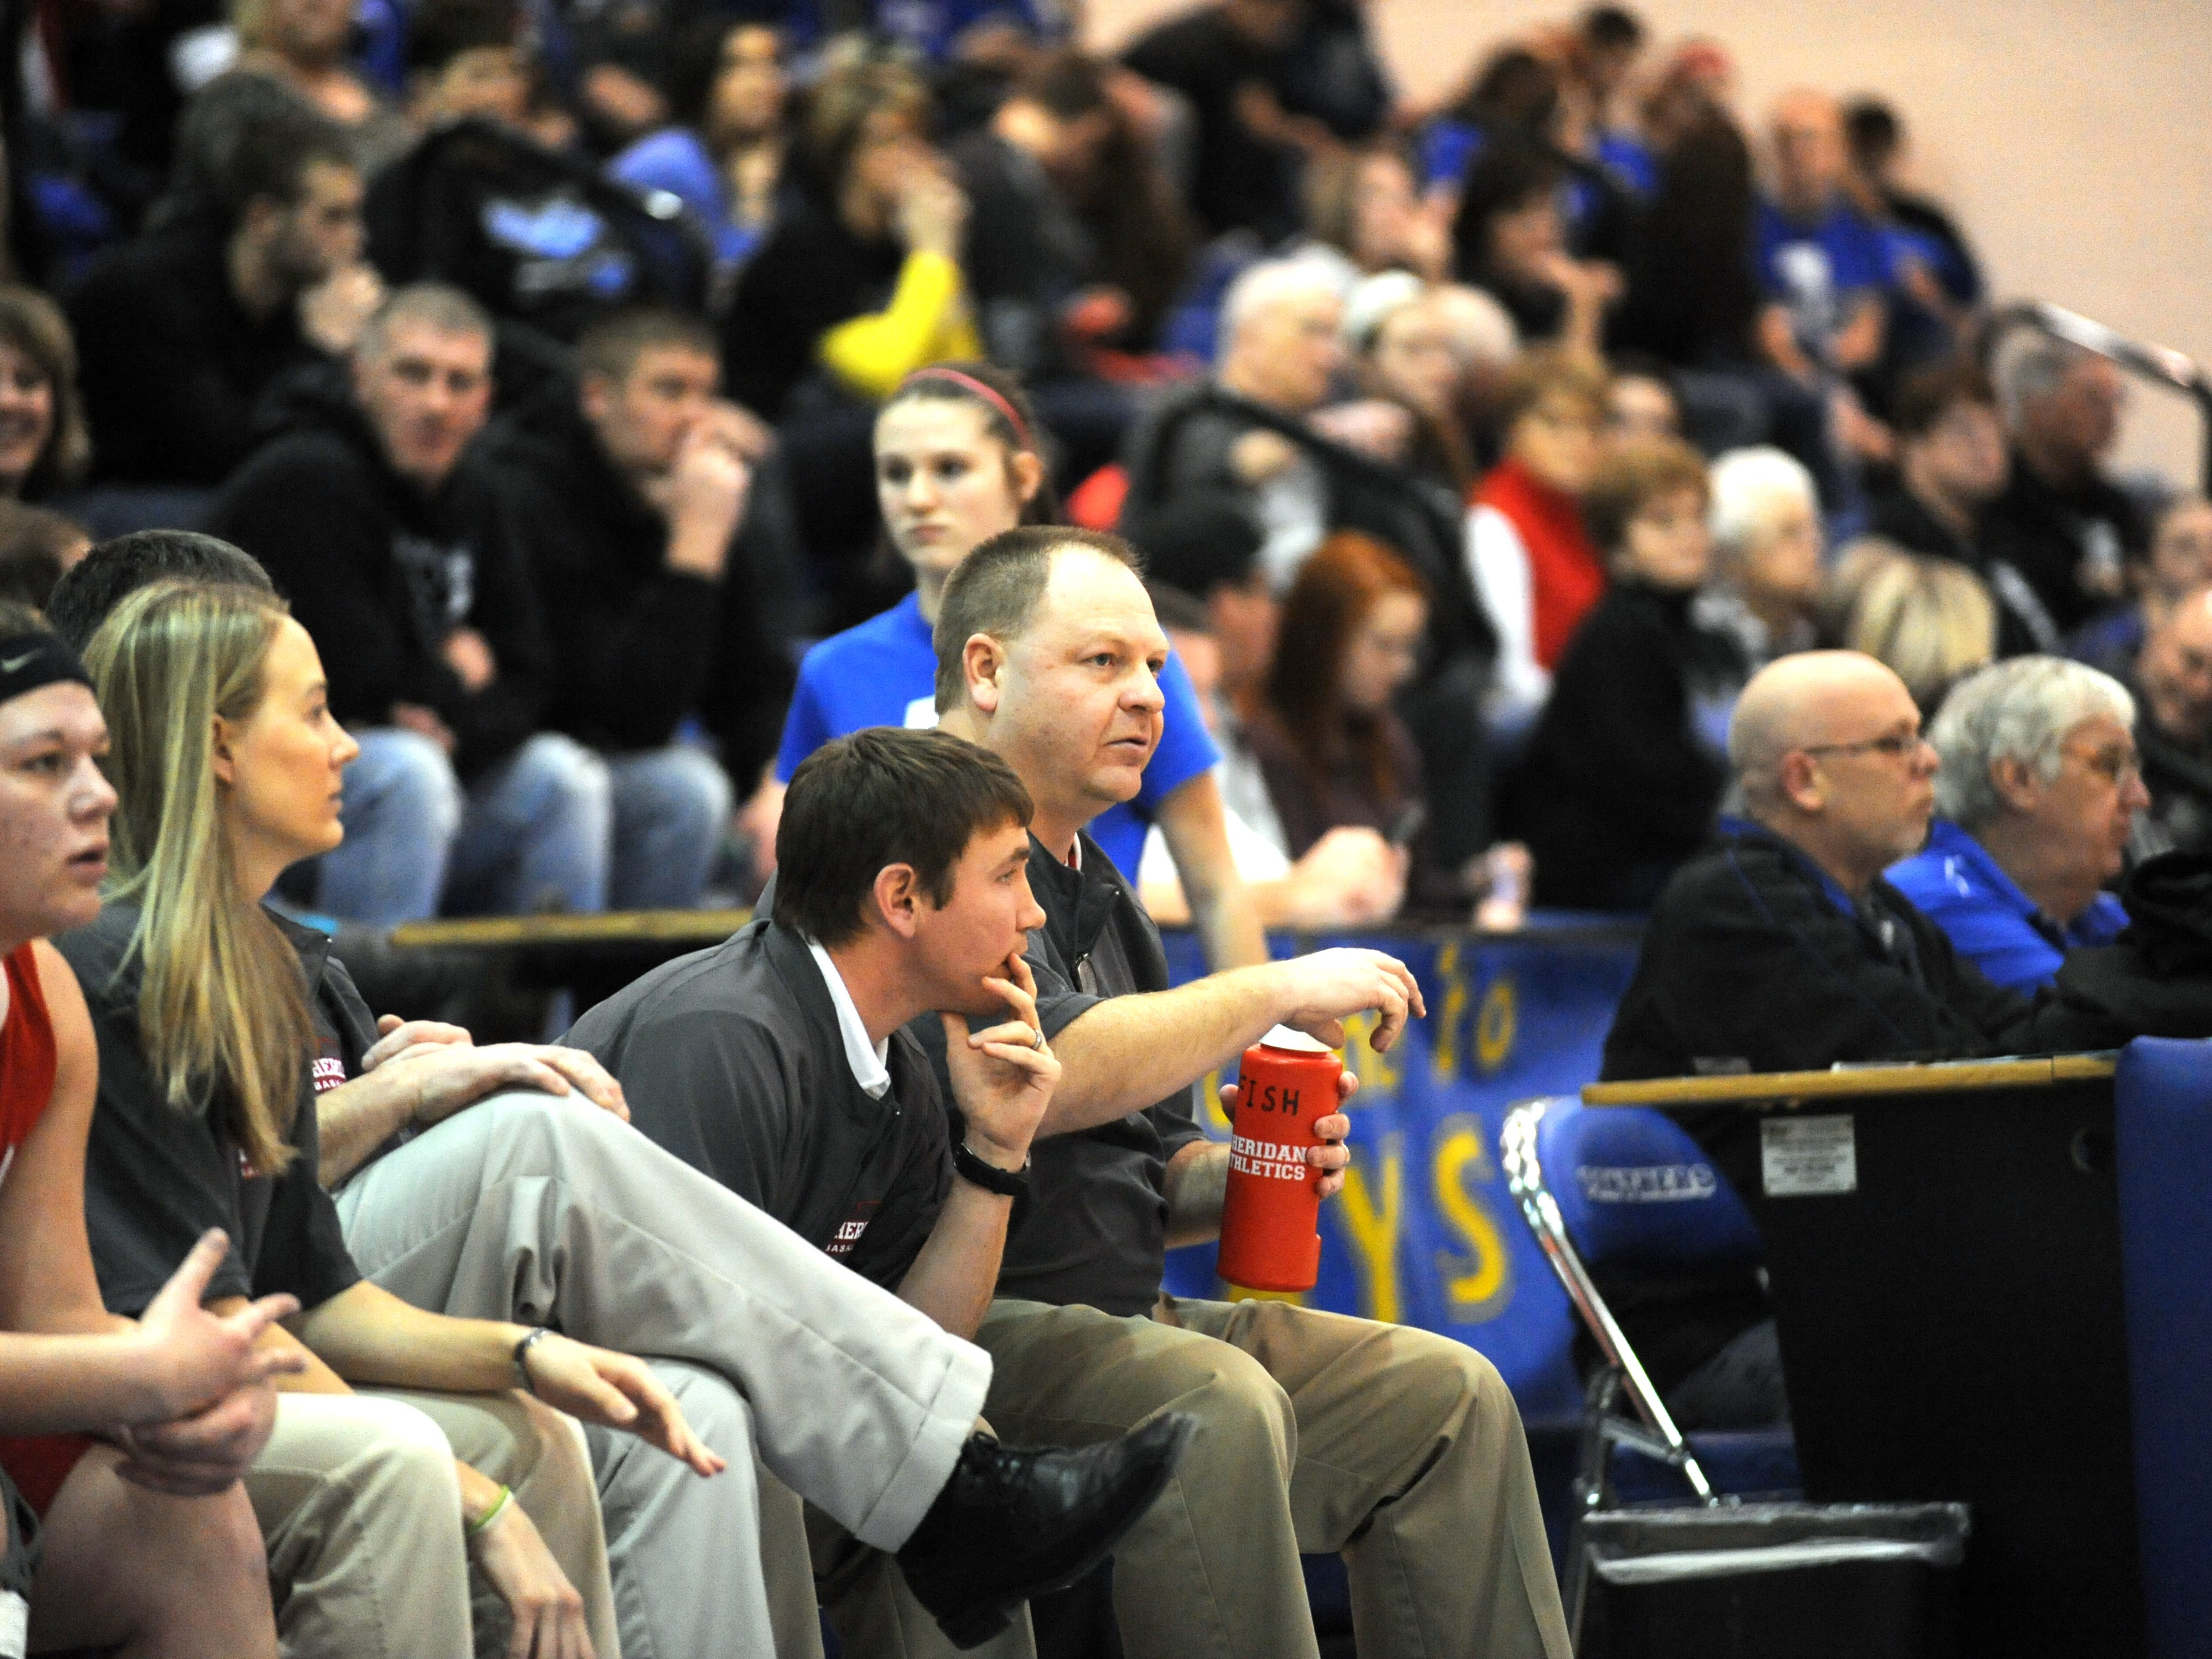 Sheridan coach Doug Fisher and J.D. Walters assess play during a girls basketball game against Maysville last season. Fisher will be now be the head boys coach, while Walters was promoted to head girls coach, the school announced.